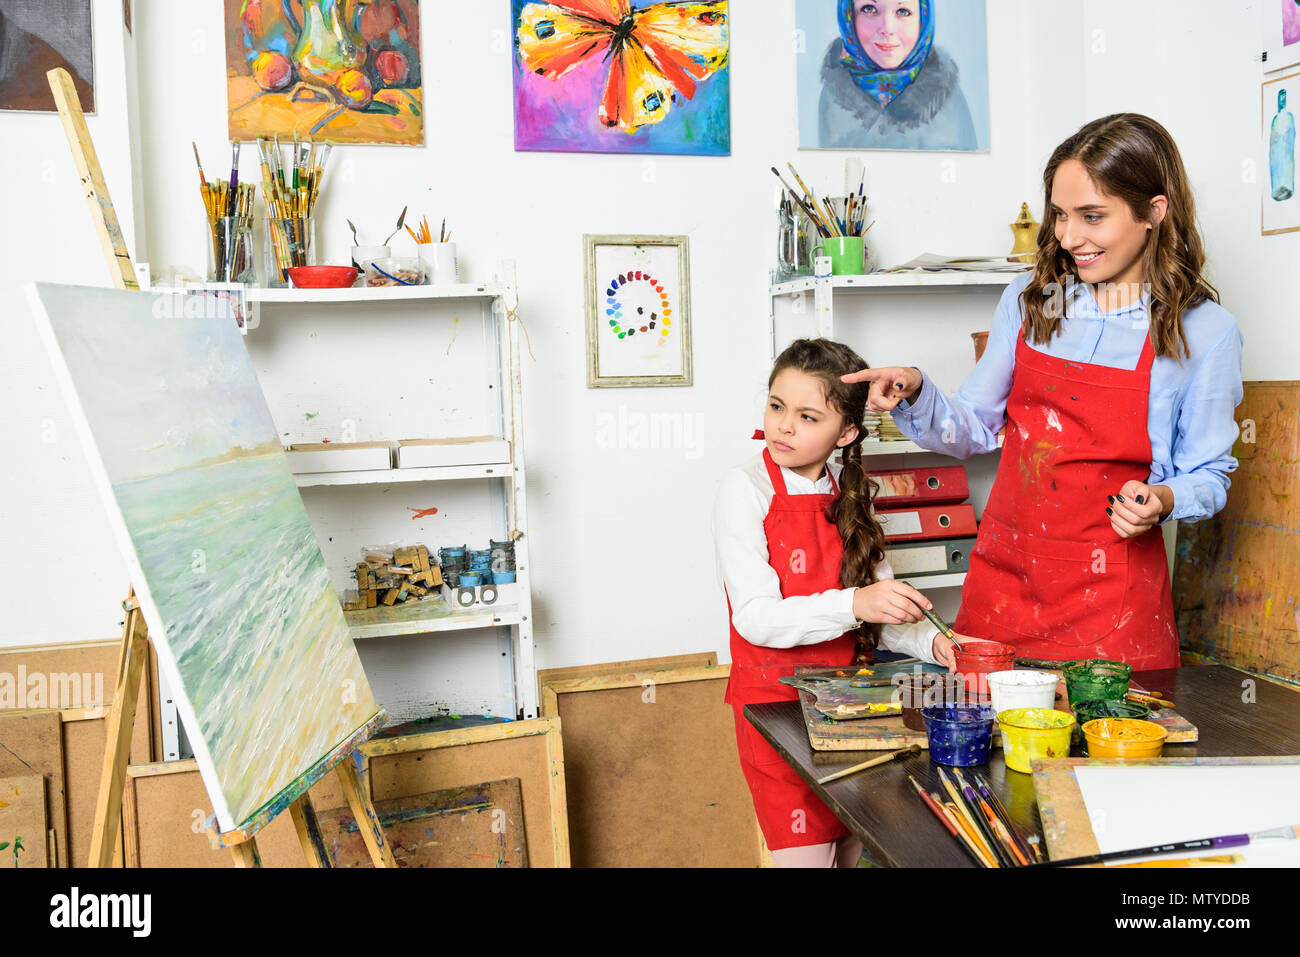 teacher pointing on pupil canvas in workshop of art school - Stock Image